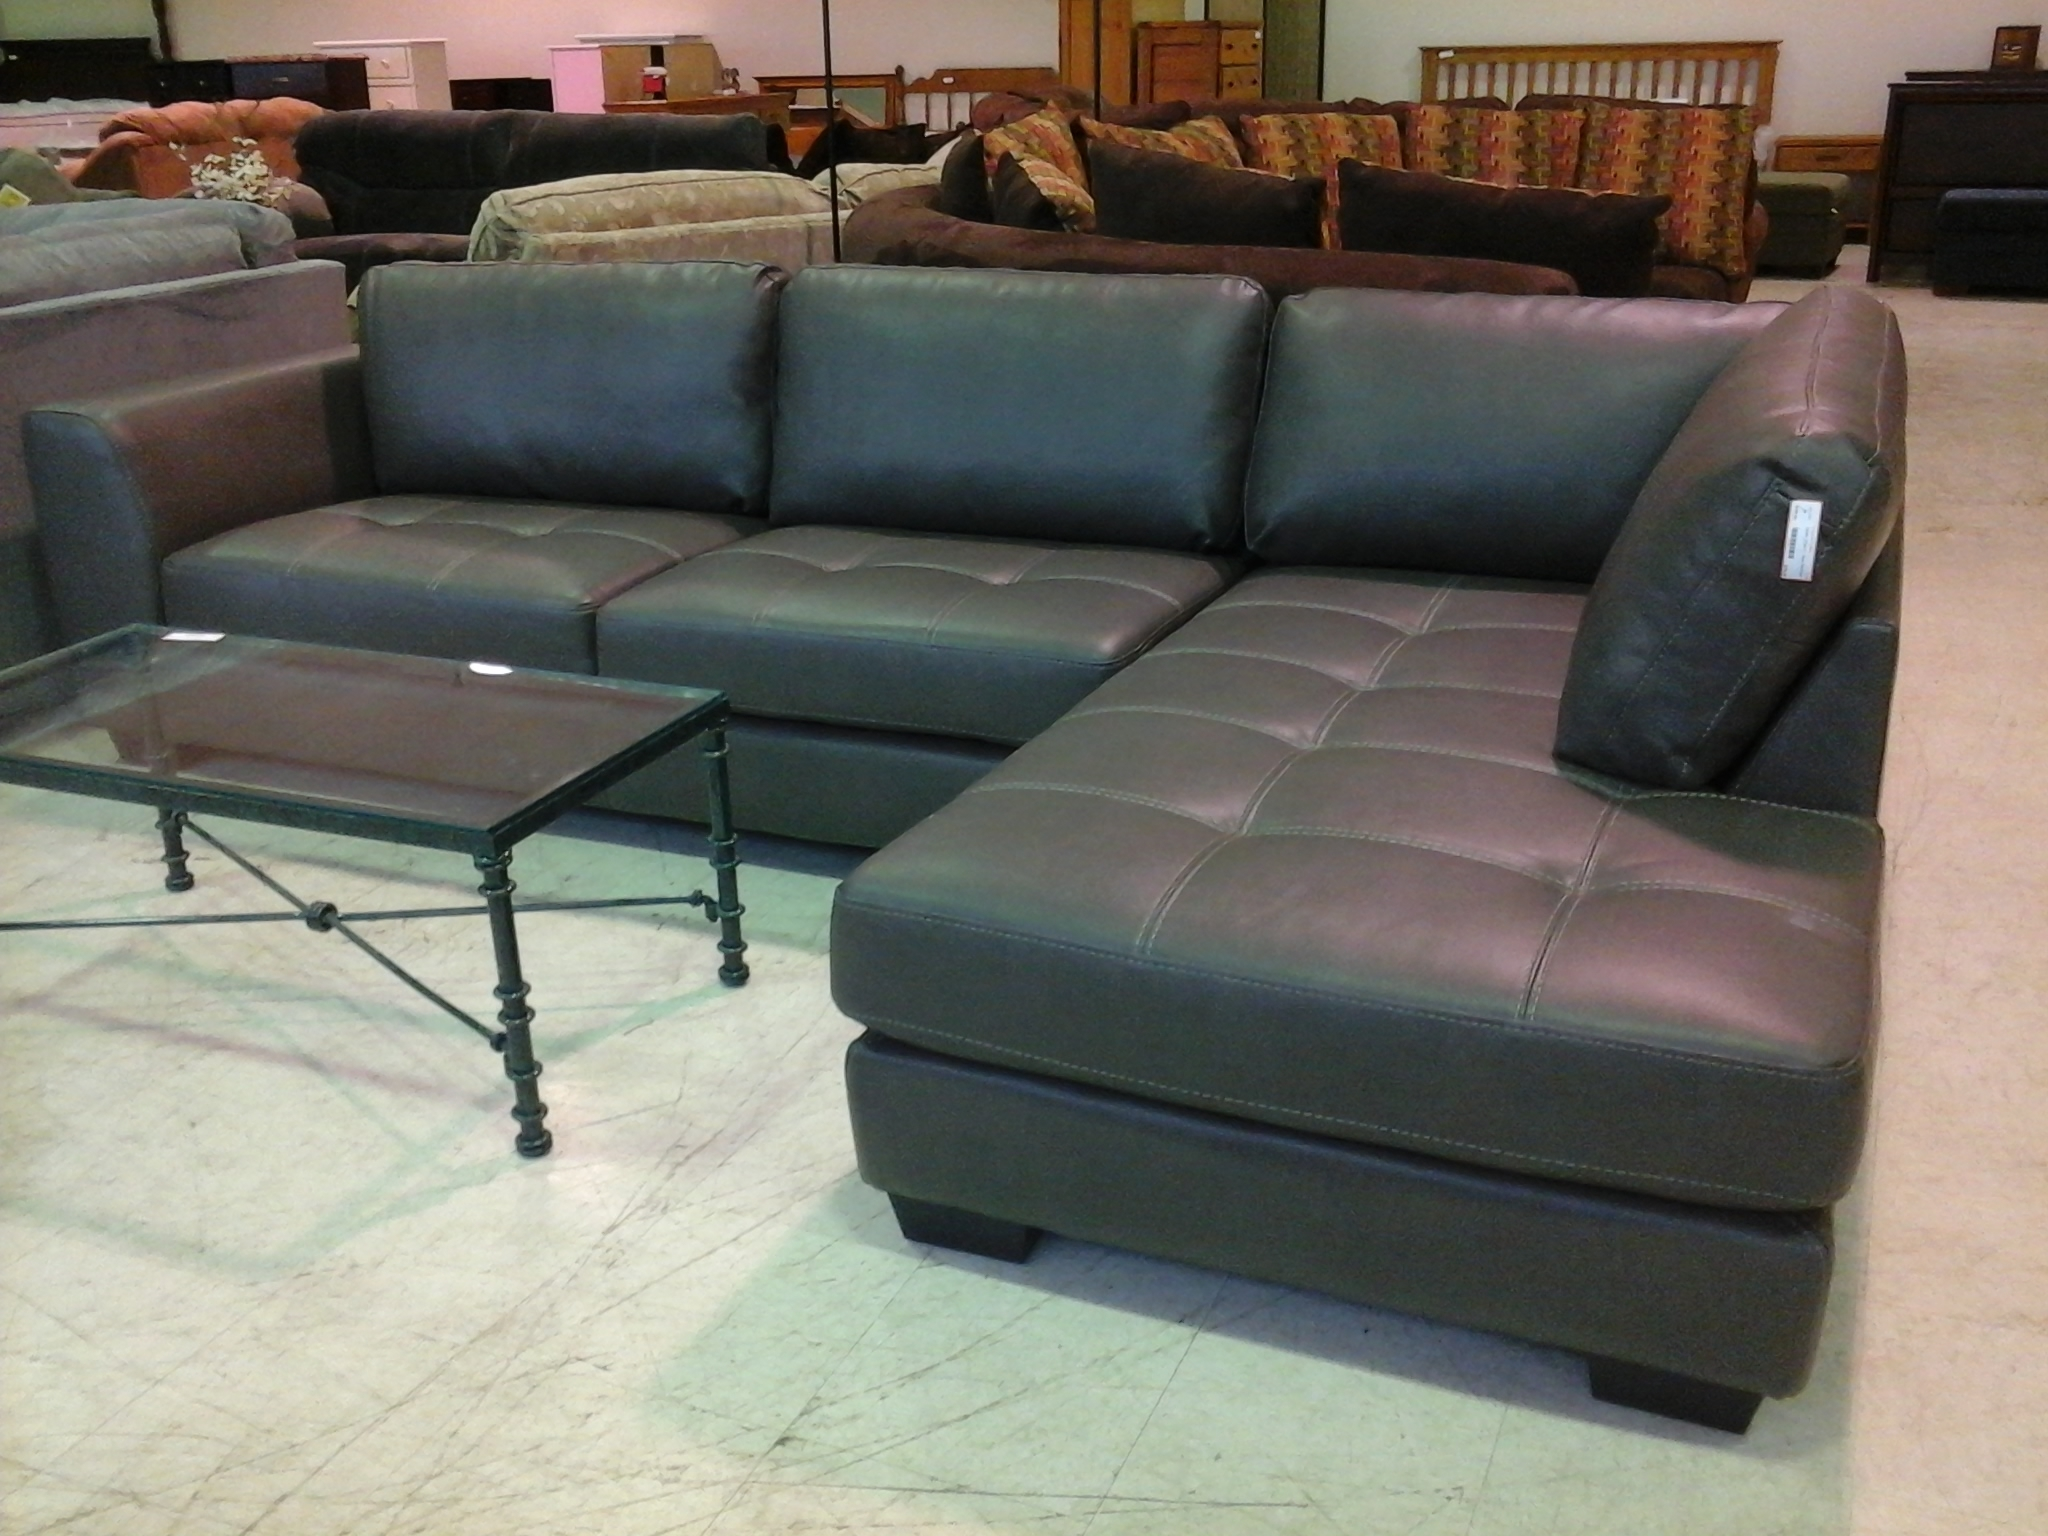 Sectional Sofas Nyc Throughout Nyc Sectional Sofas (Image 9 of 10)